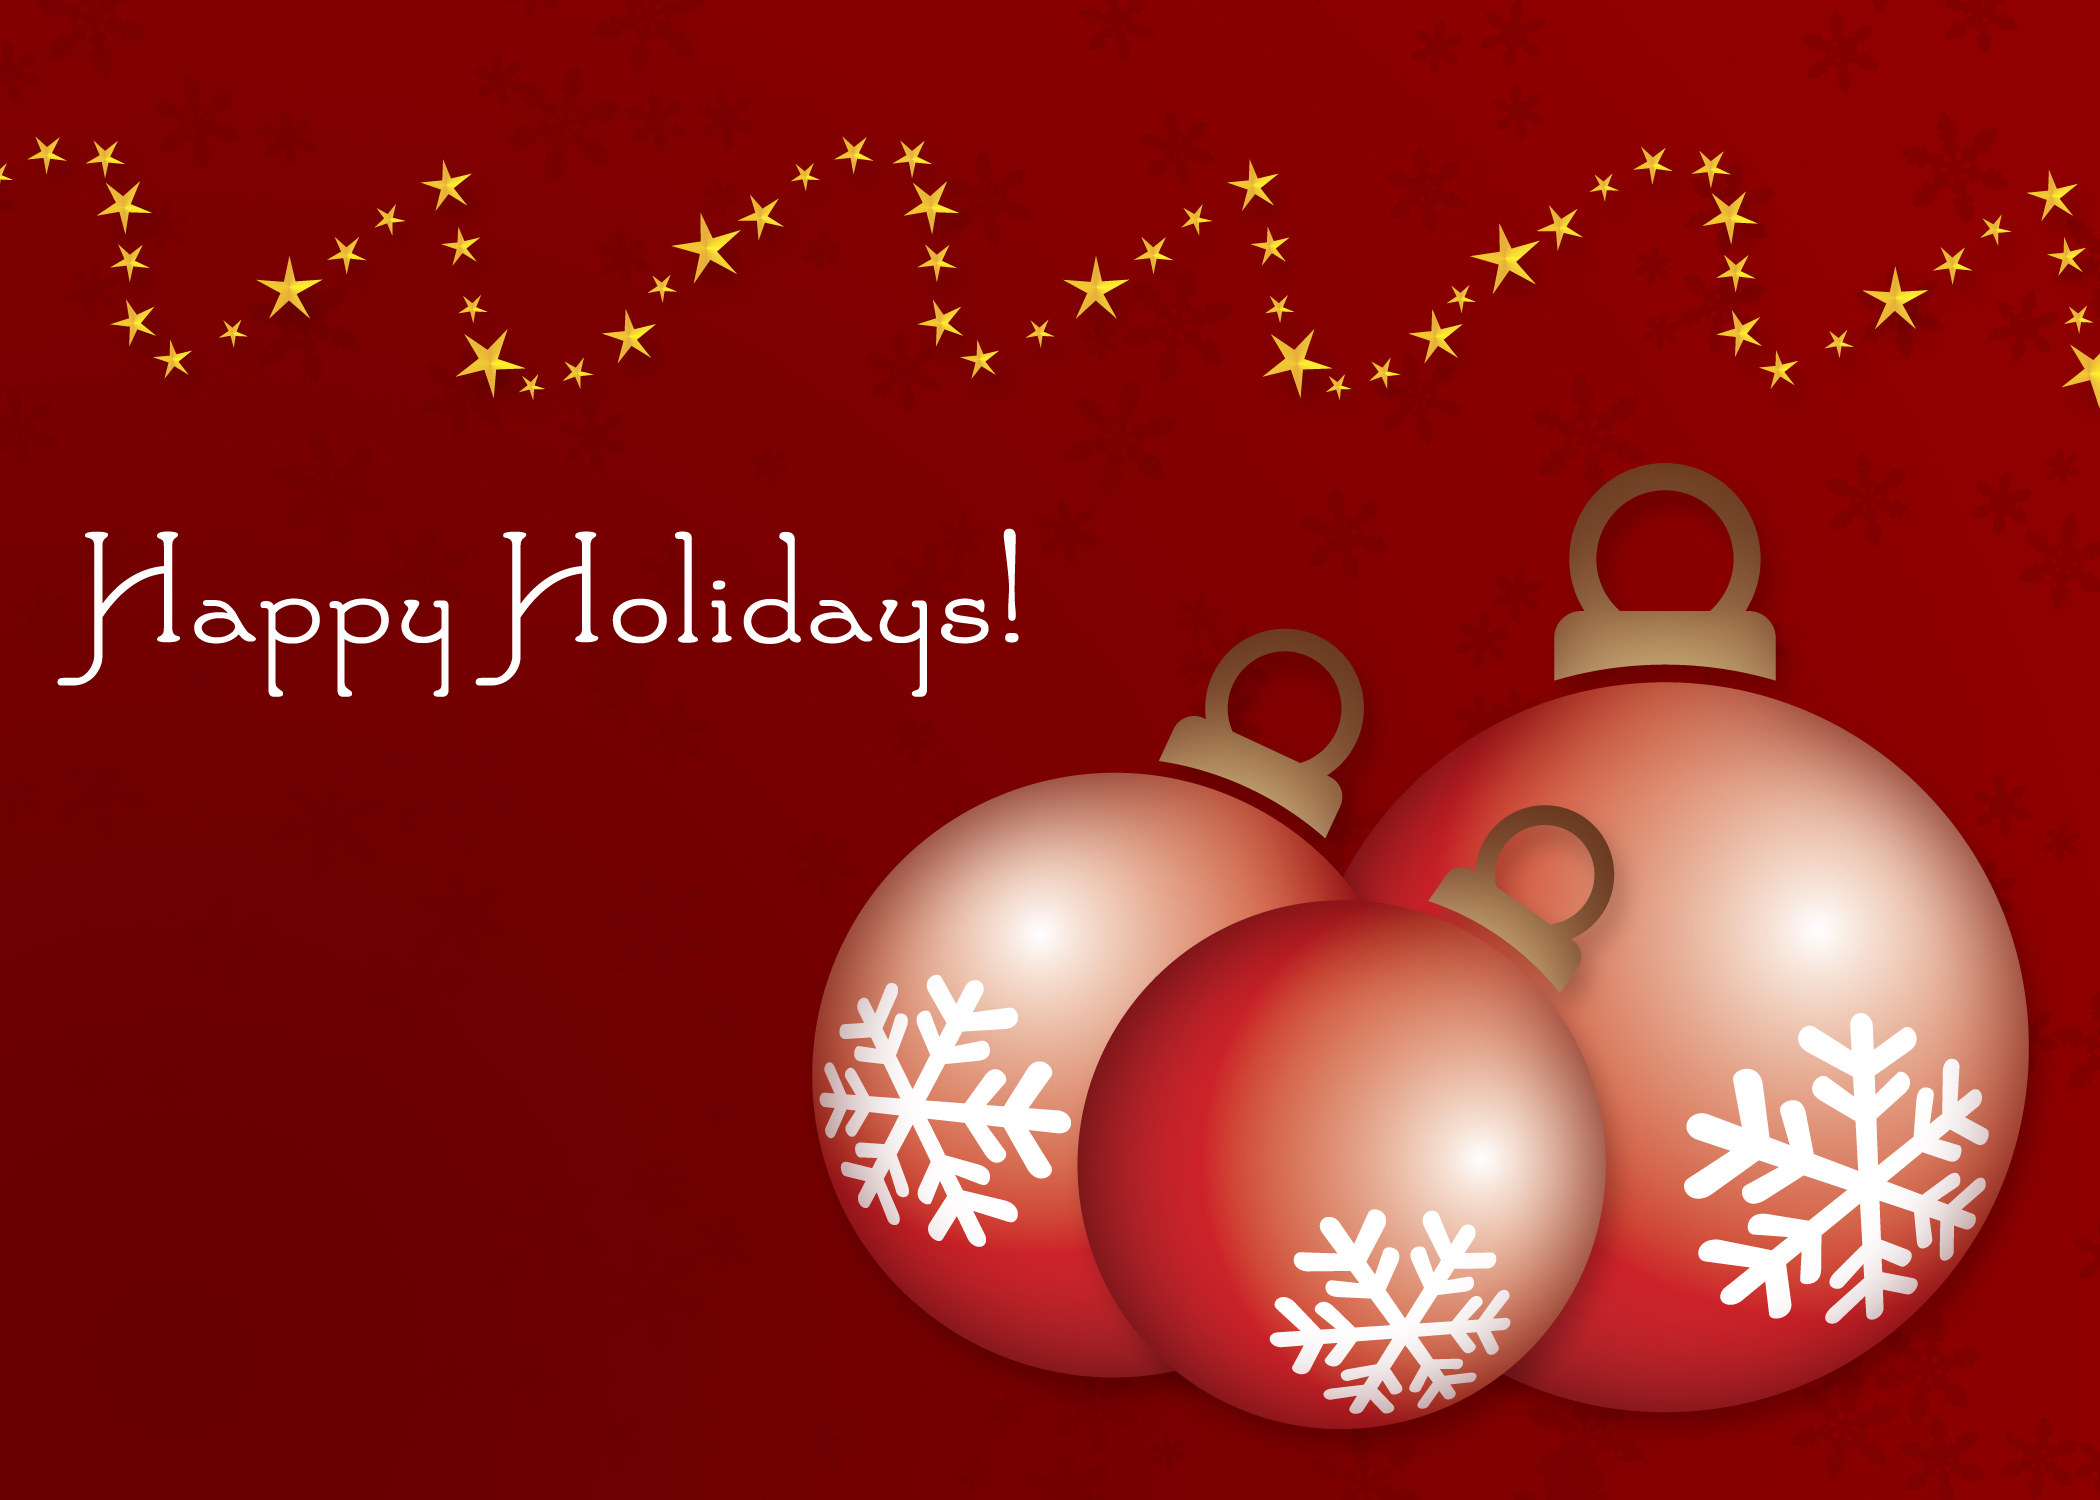 12 Hy Holidays Card Designs Images